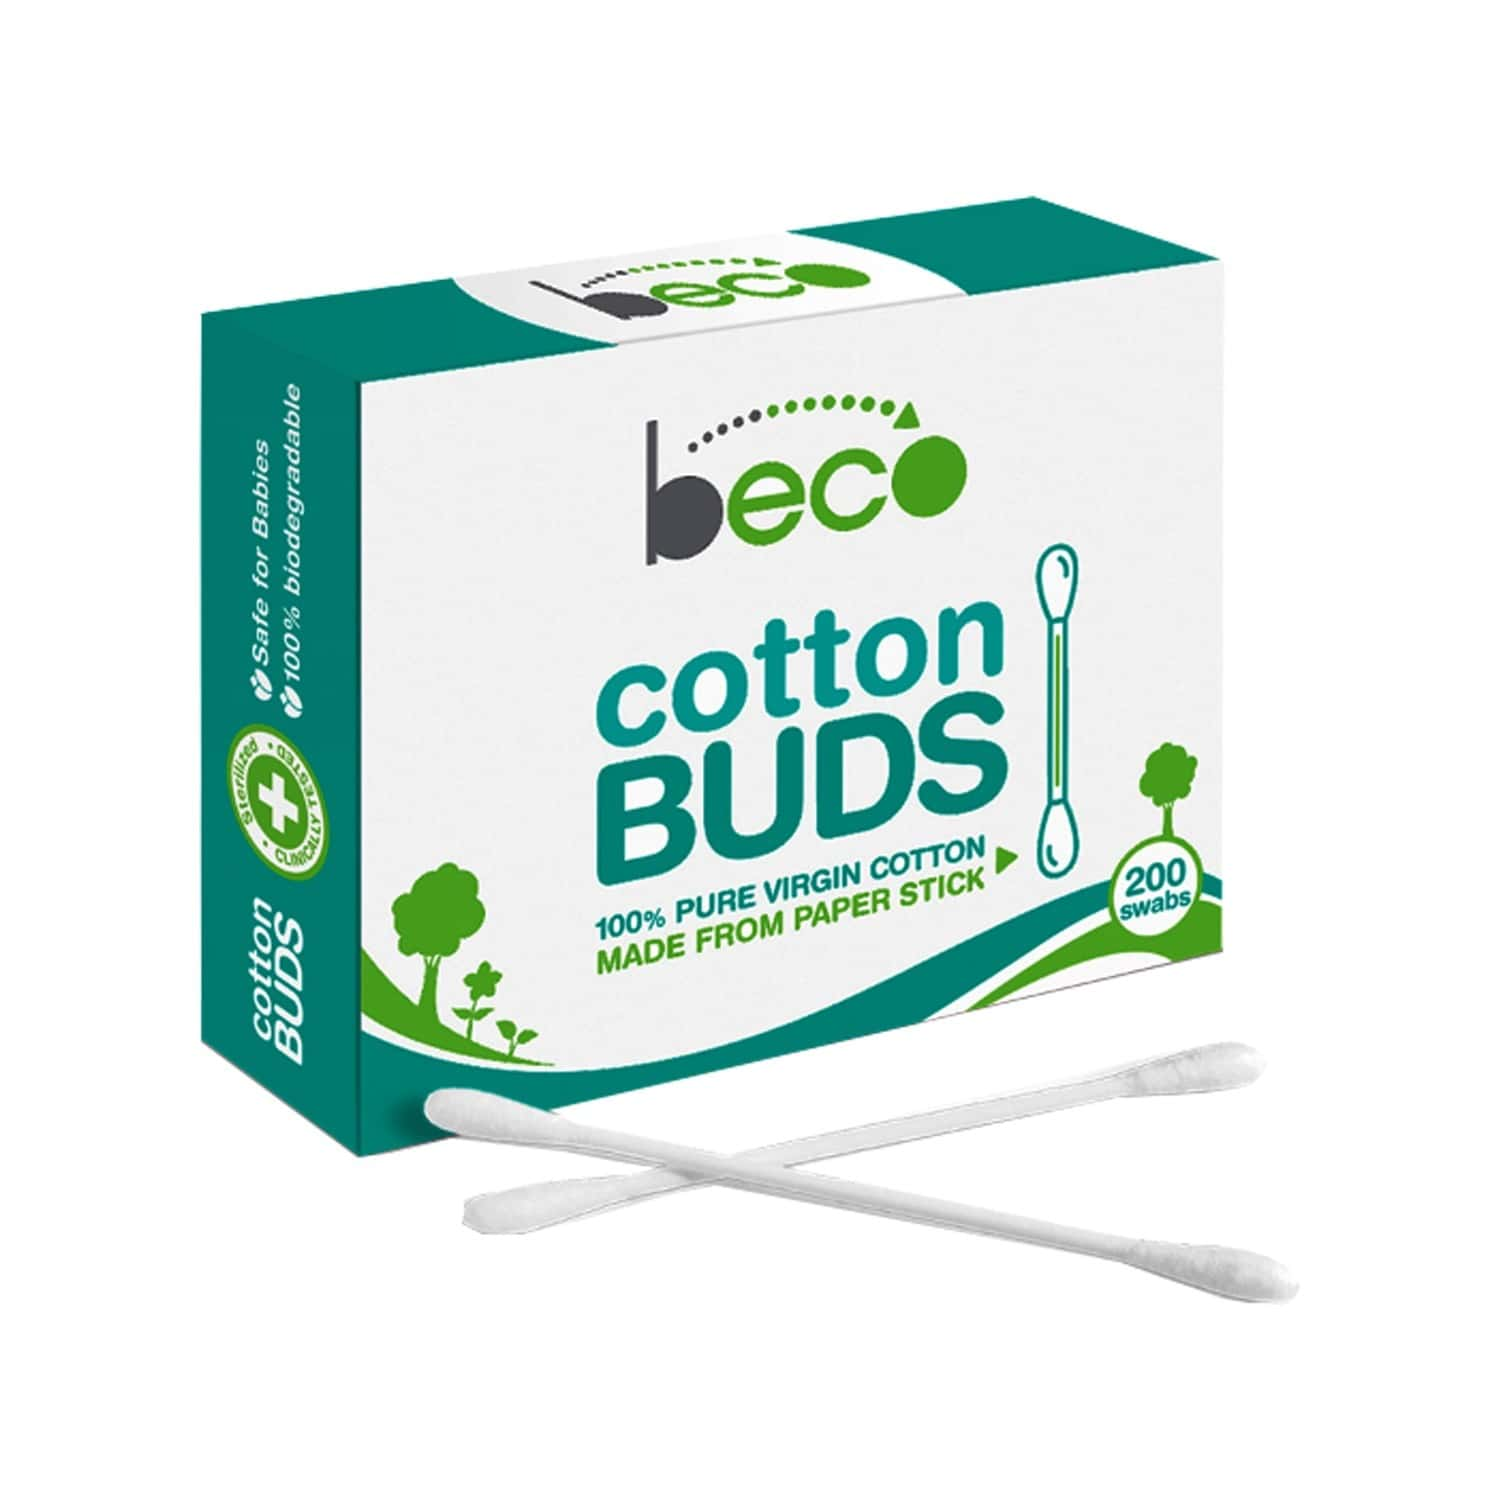 Beco Cotton Buds With Paper Stick - 100 Sticks (200 Swabs )